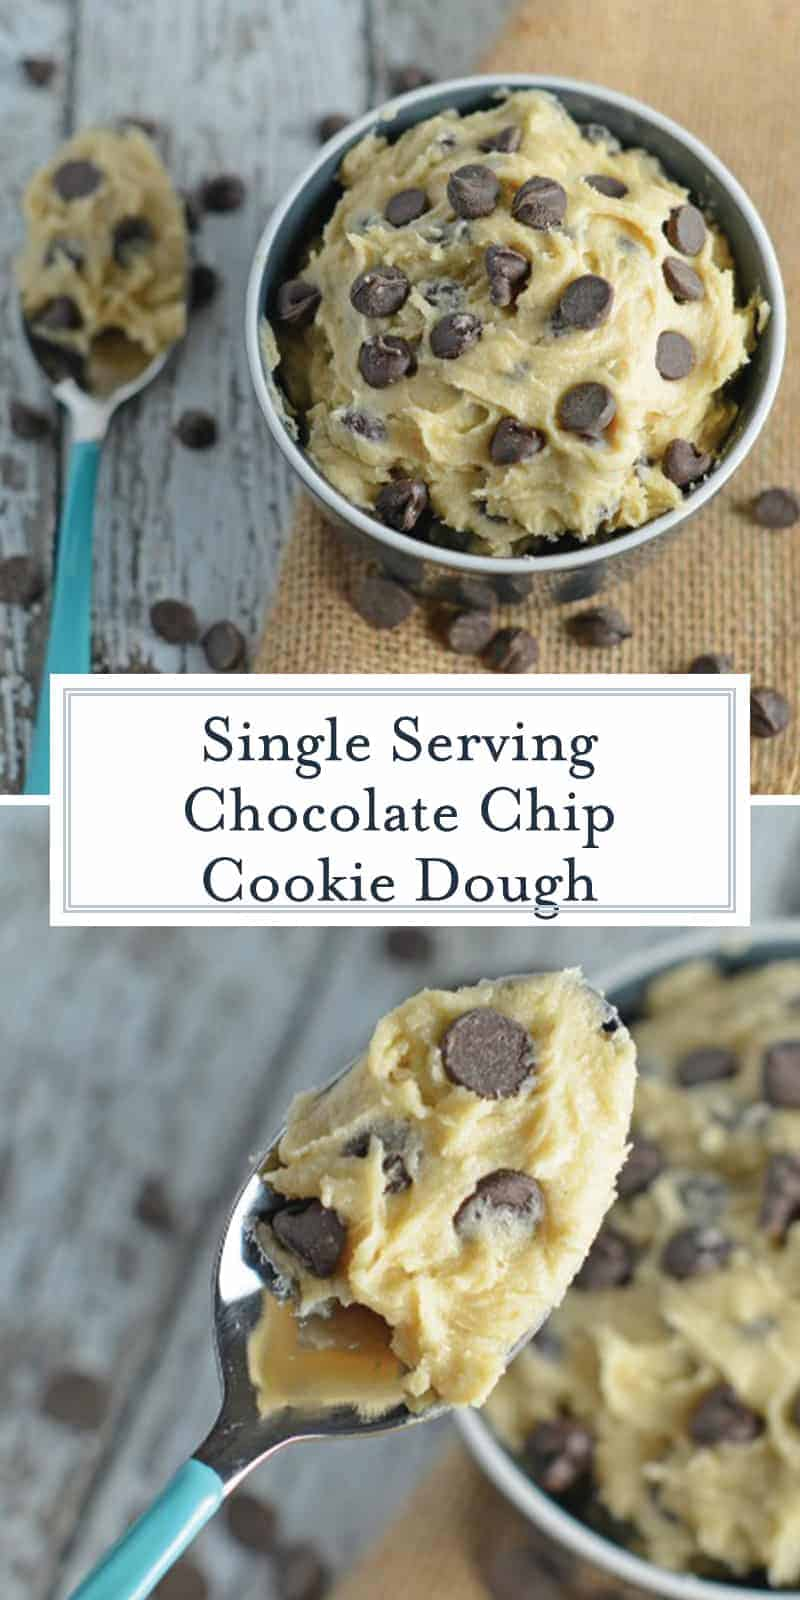 Edible Cookie Dough and Homemade Chocolate Chip Cookie Dough for Pinterest